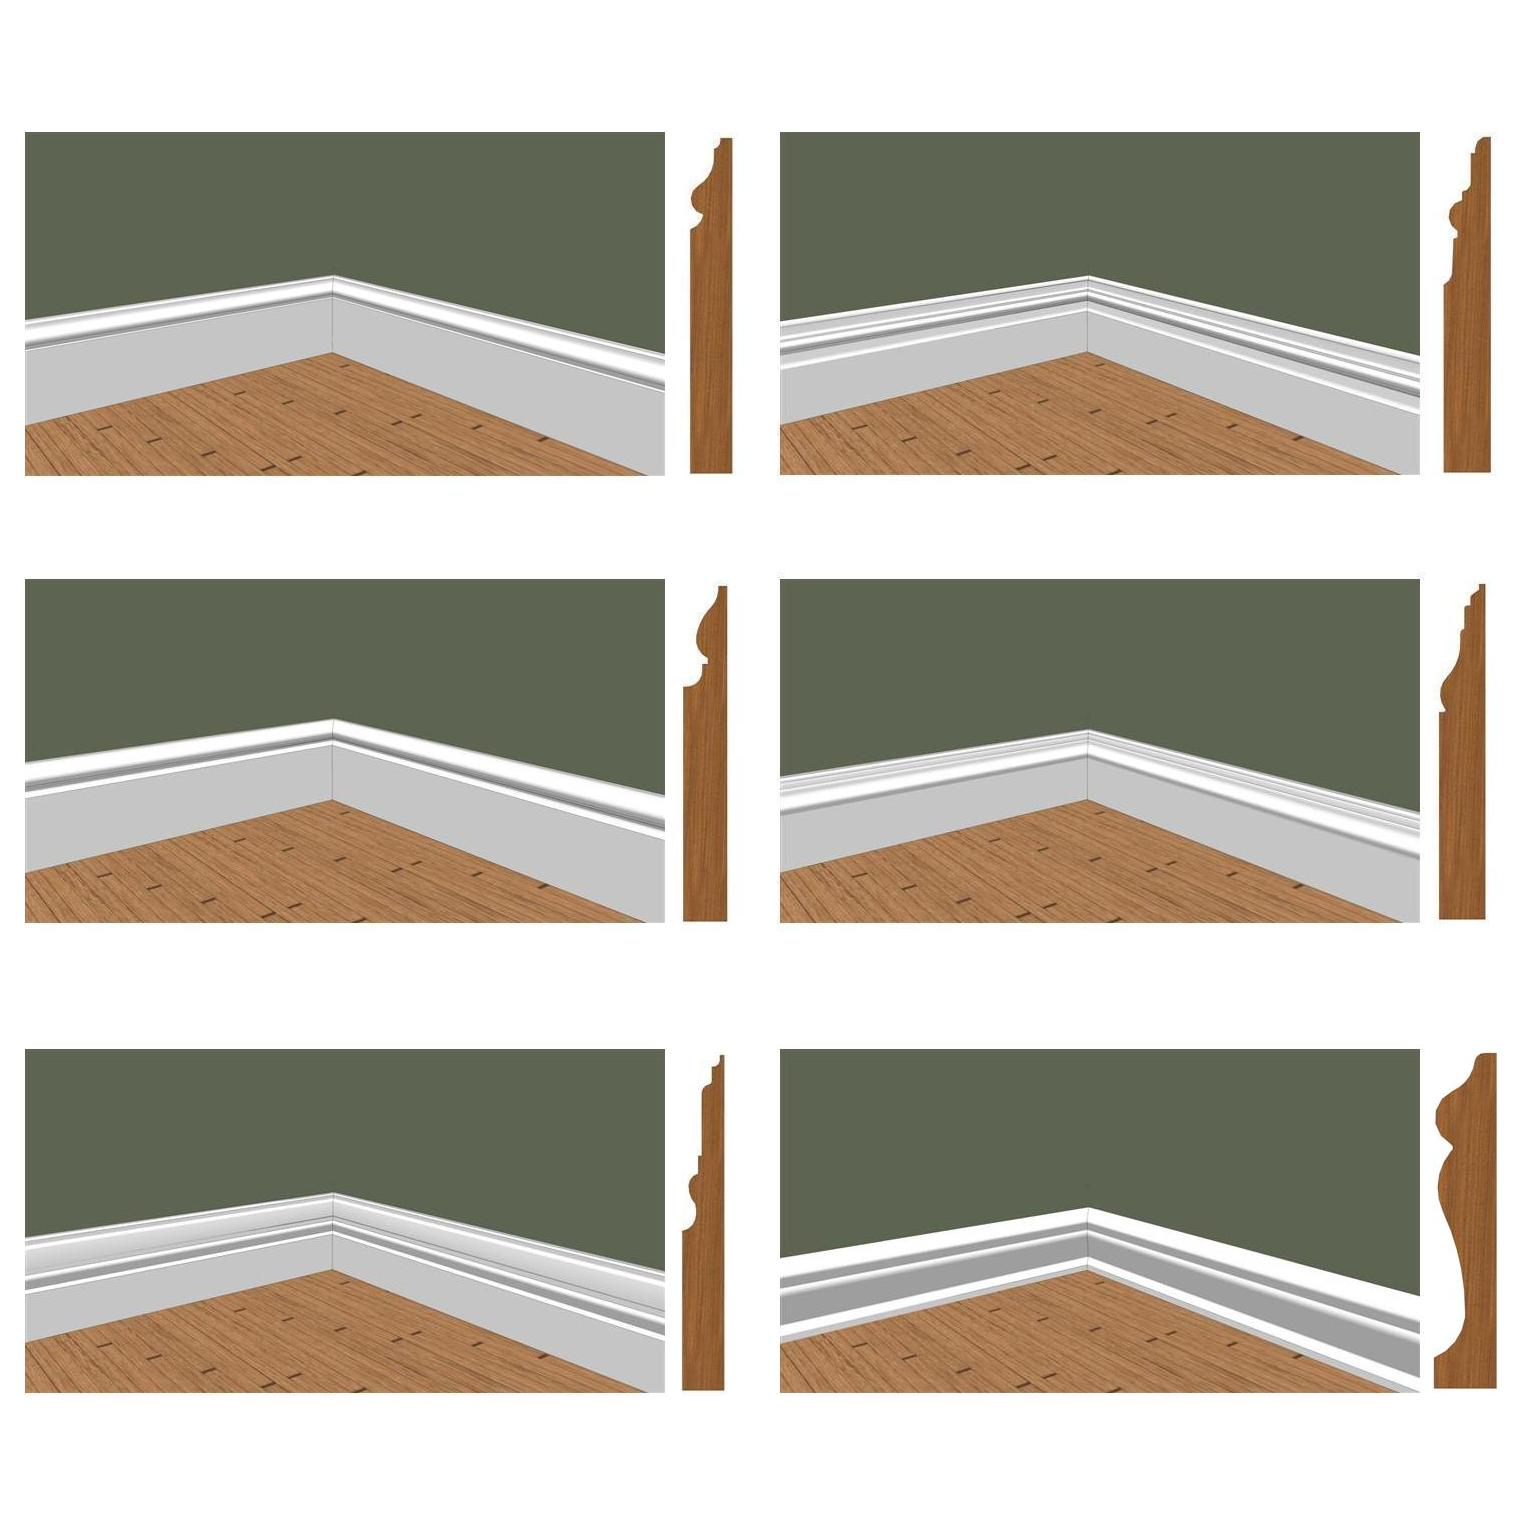 baseboard molding with olive wall and wooden floor ideas